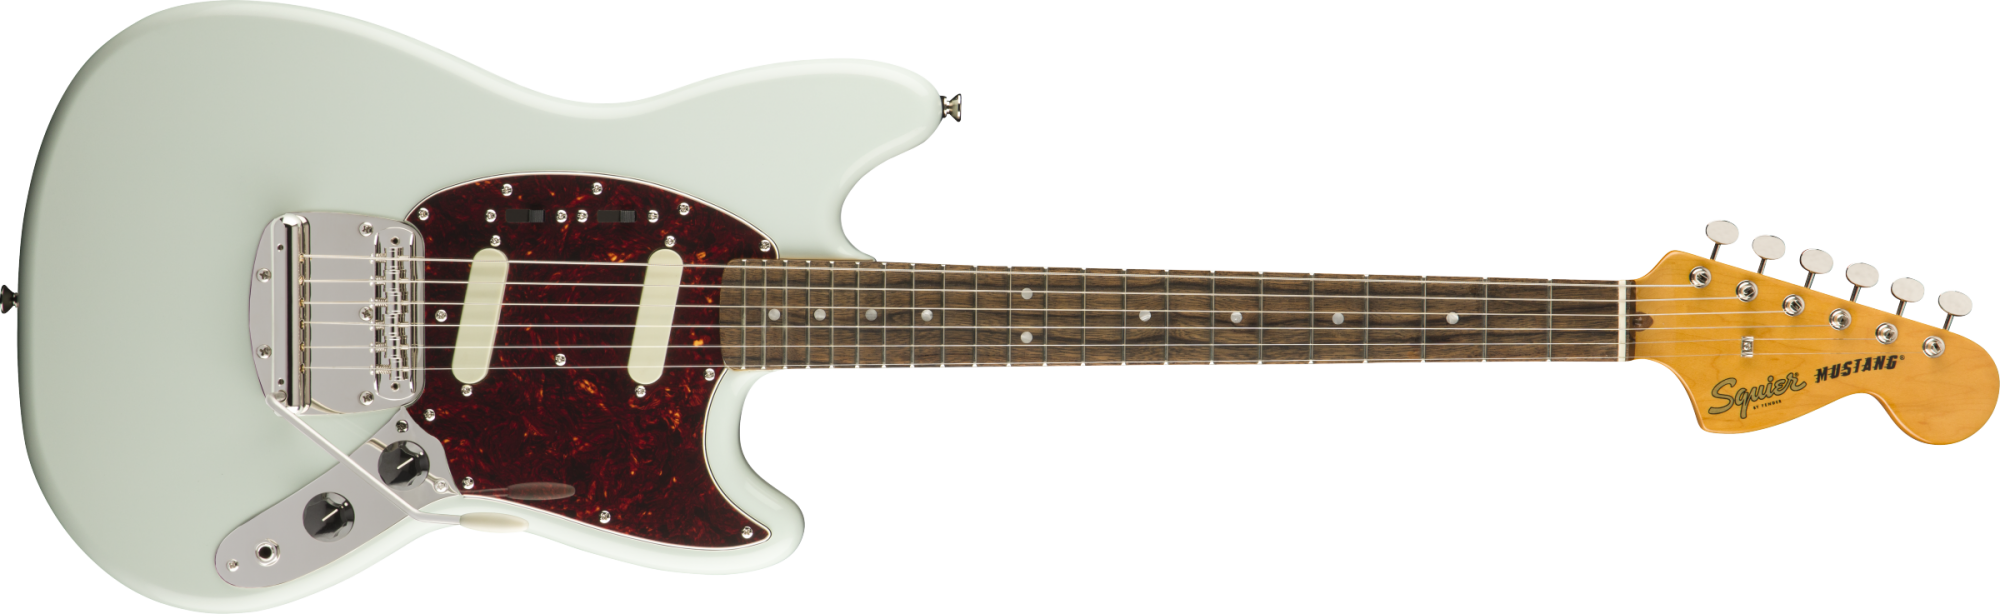 Squier Classic Vibe '60s Mustang